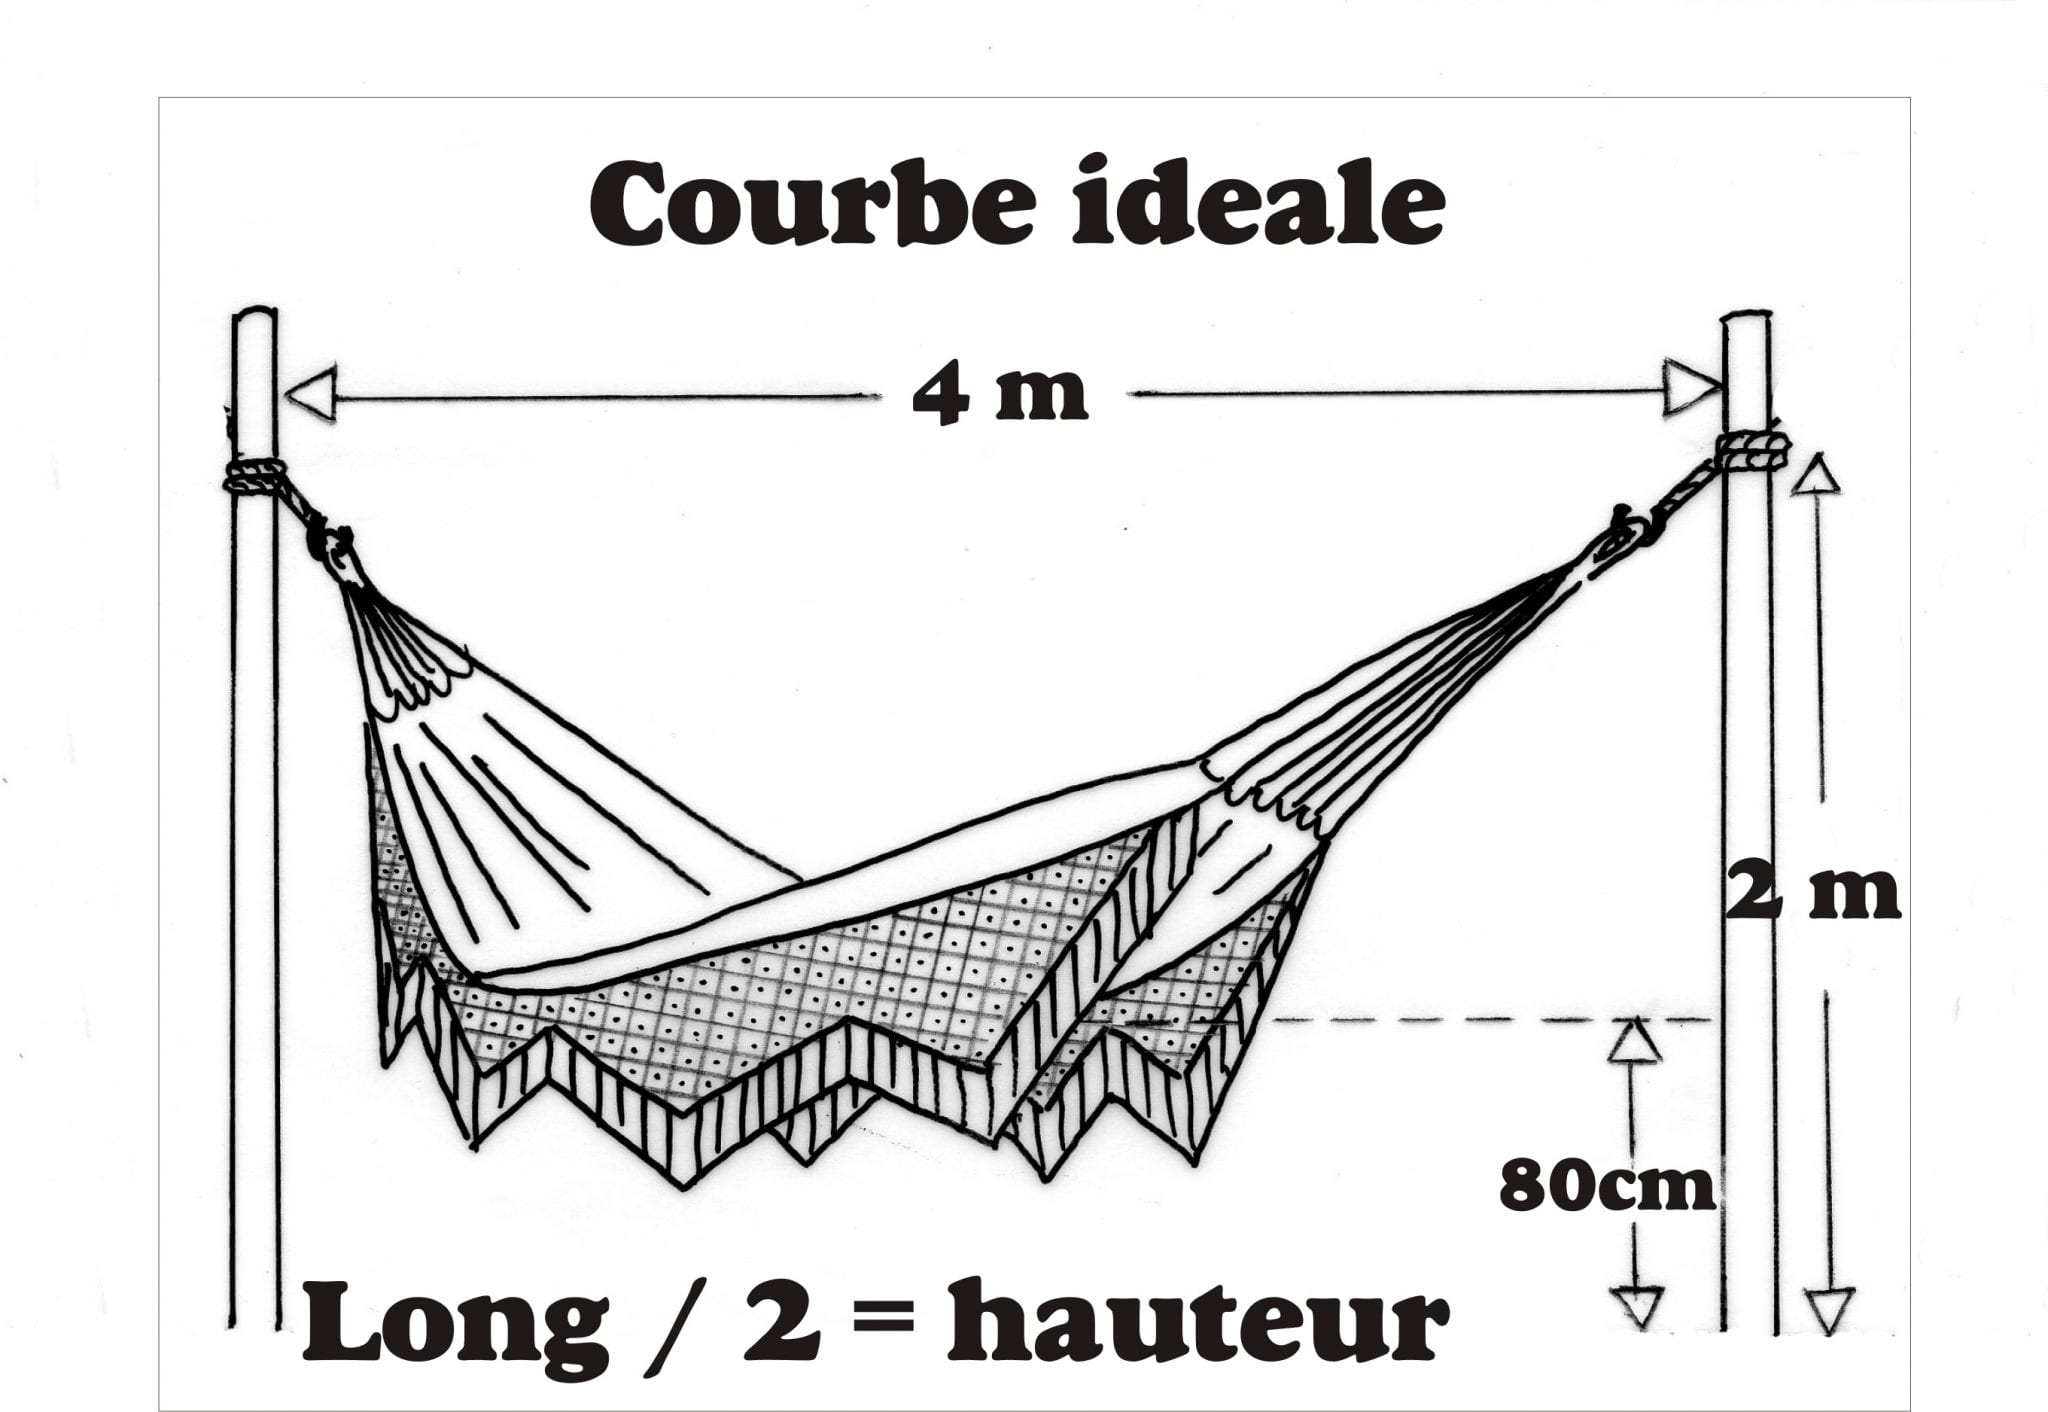 Comment bien installer un hamac tropical hamac - Comment accrocher un abat jour au plafond ...